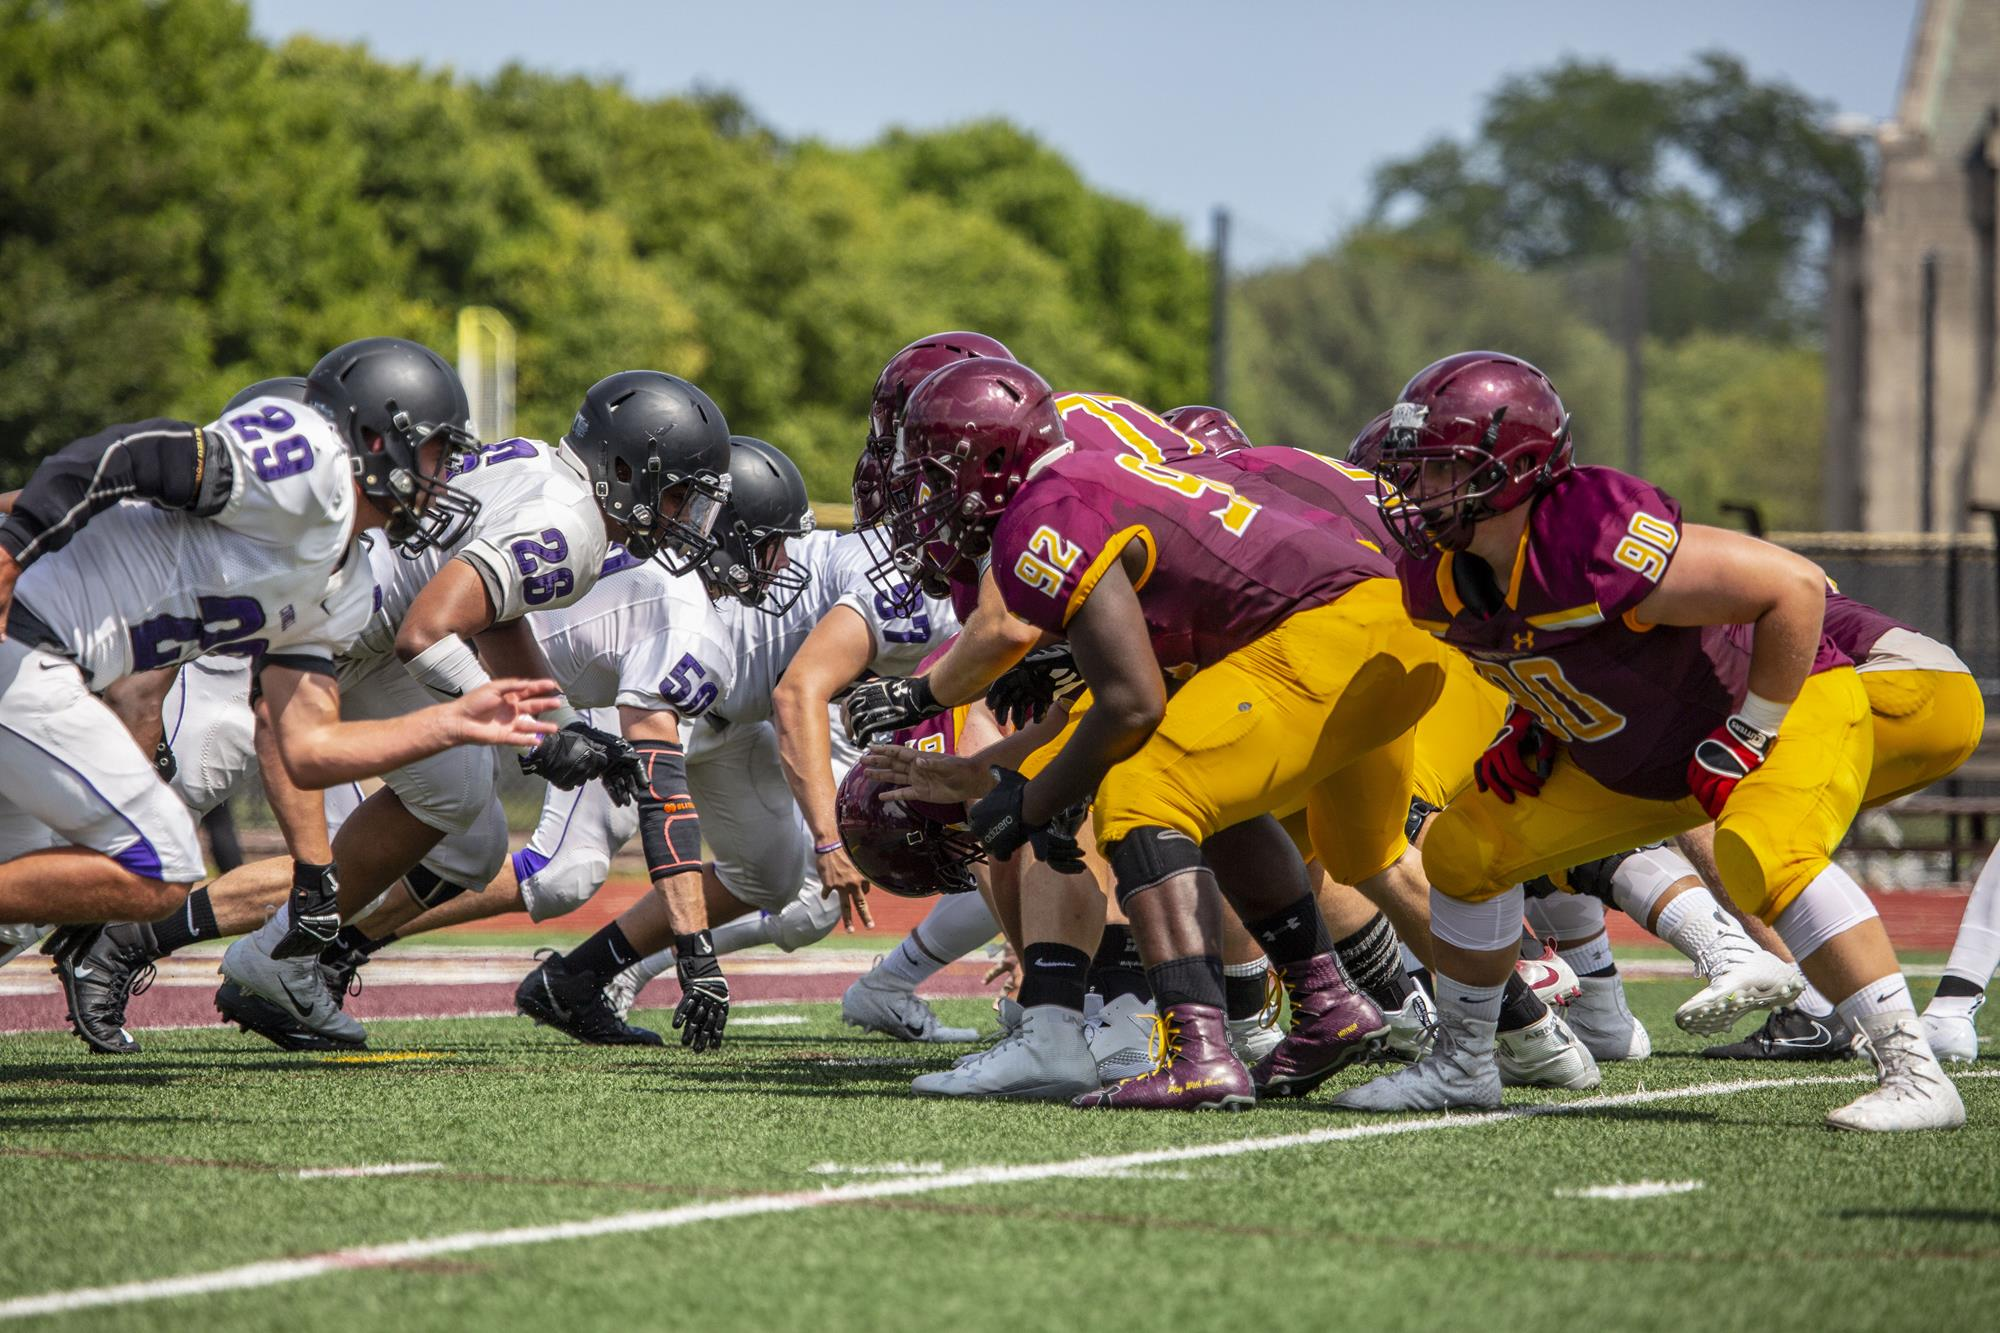 a55ca9e4db8 Record Numbers Have CUC Football Eager to Compete - Concordia ...